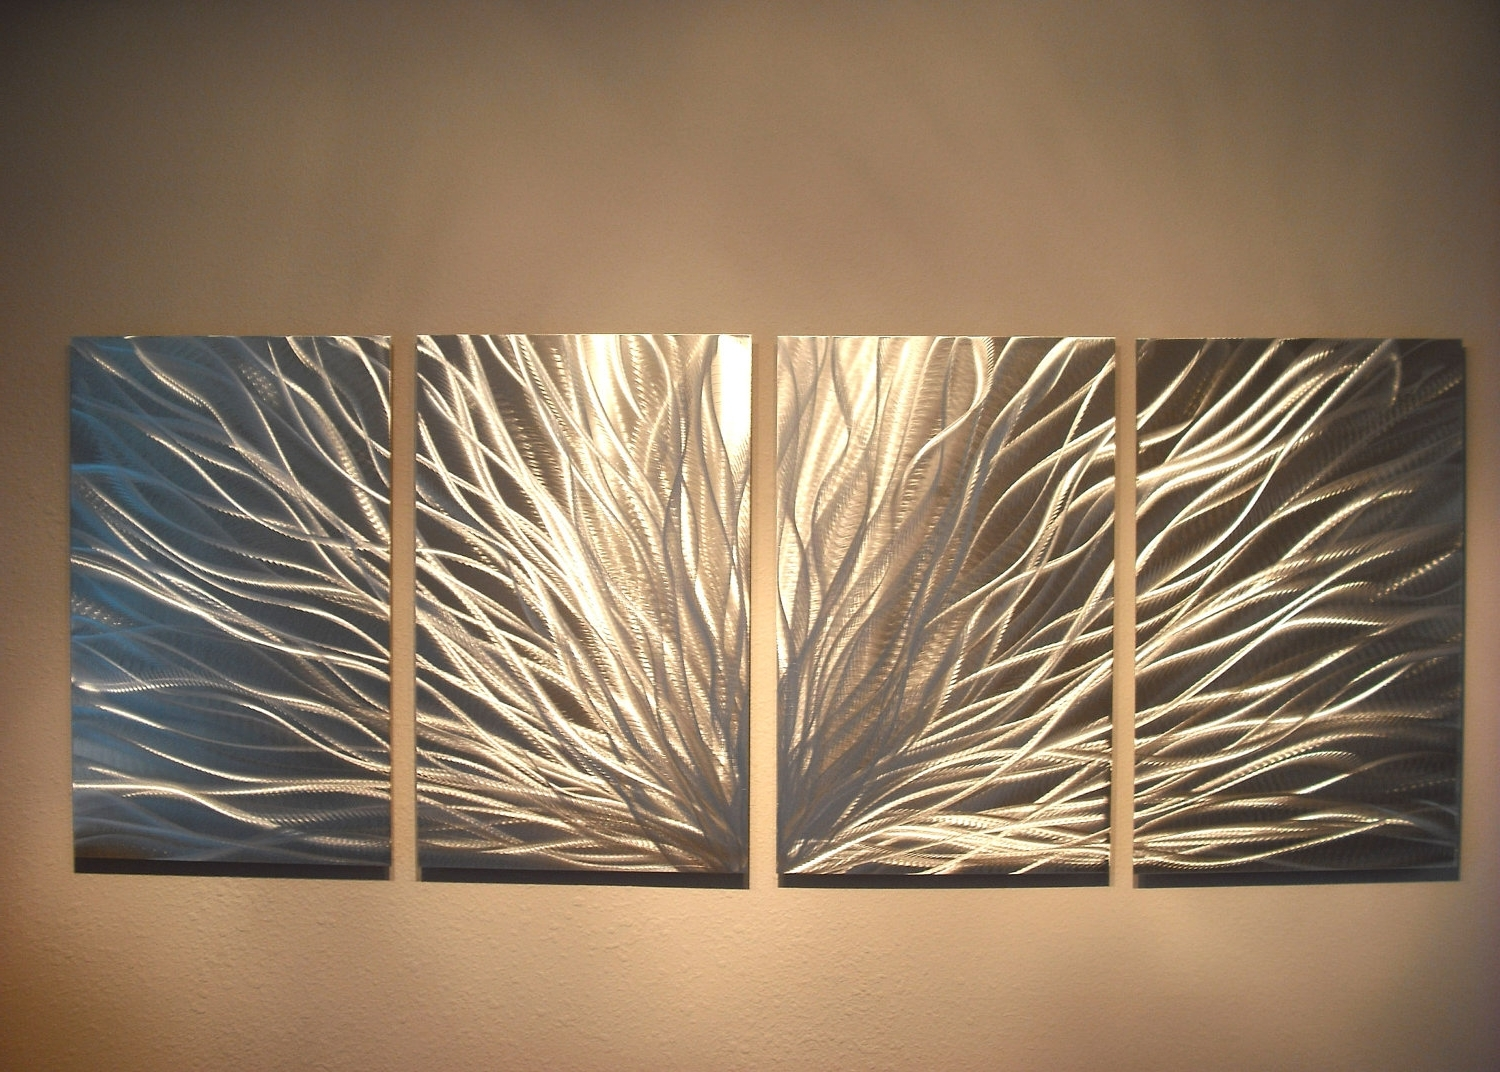 Most Current Large Metal Wall Art Within Radiance – Abstract Metal Wall Art Contemporary Modern Decor (View 8 of 15)